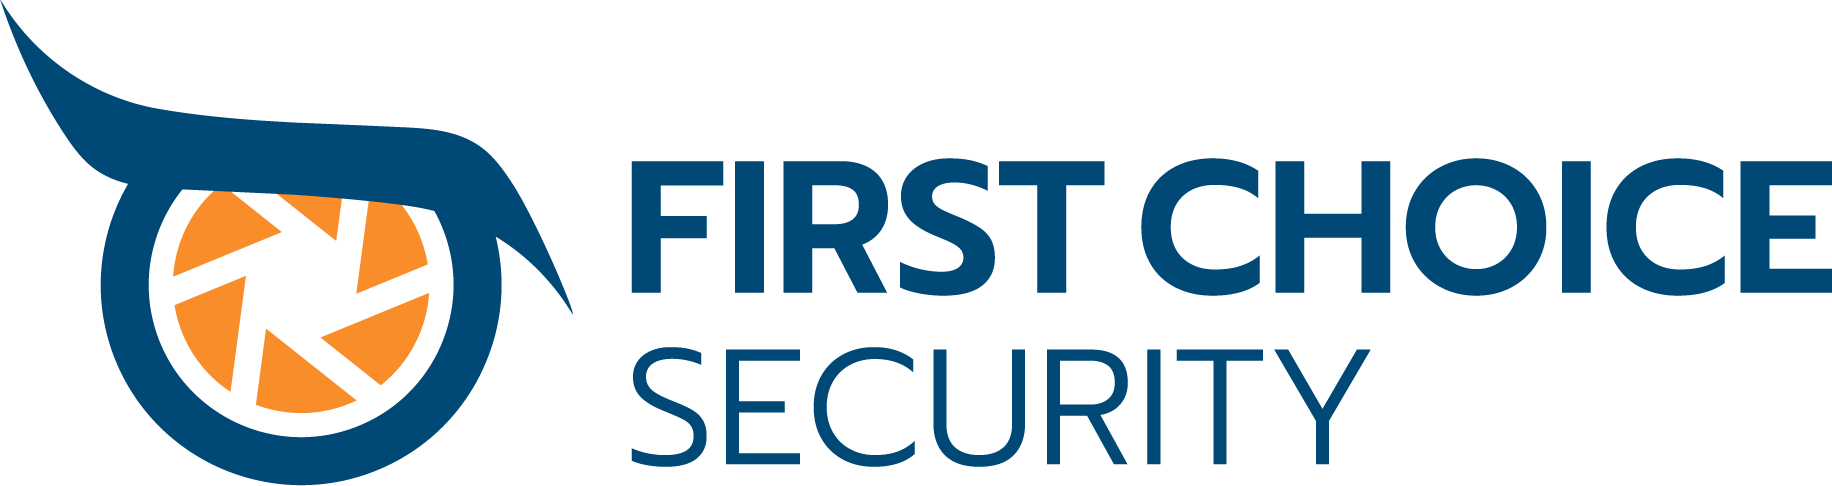 First Choice Security